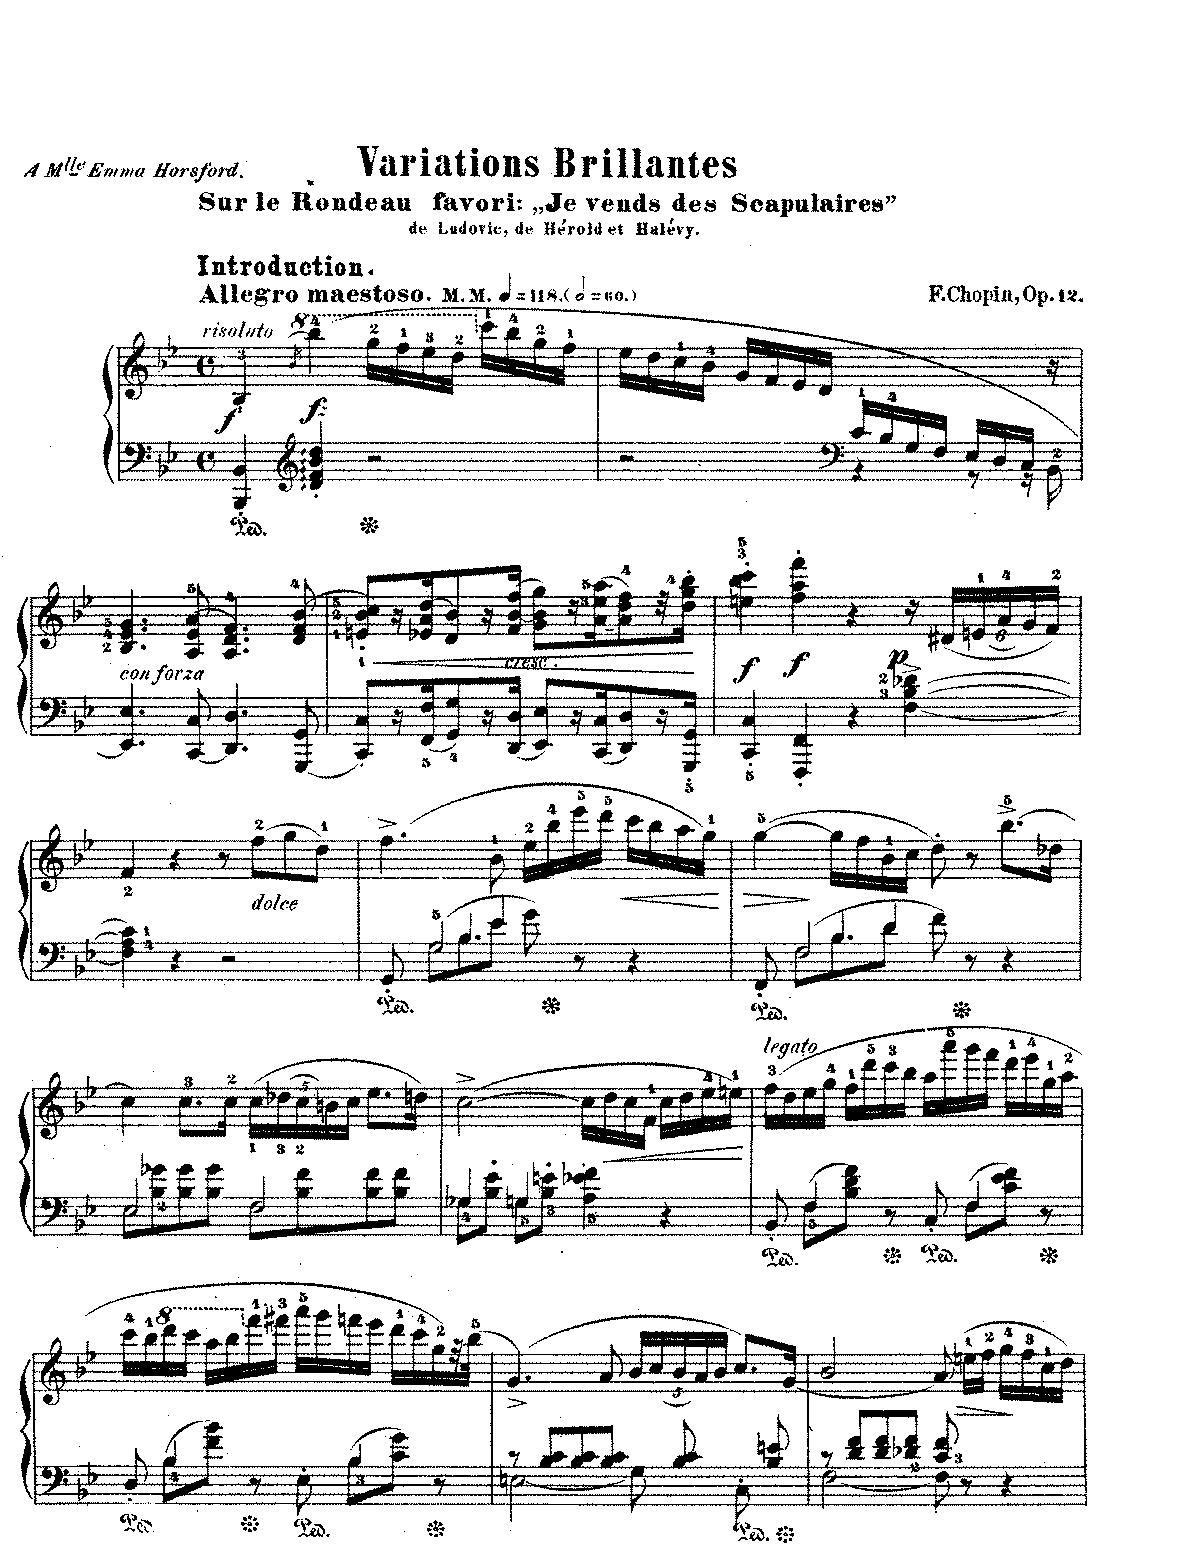 Chopin - Variations Brillantes, Op 12.pdf